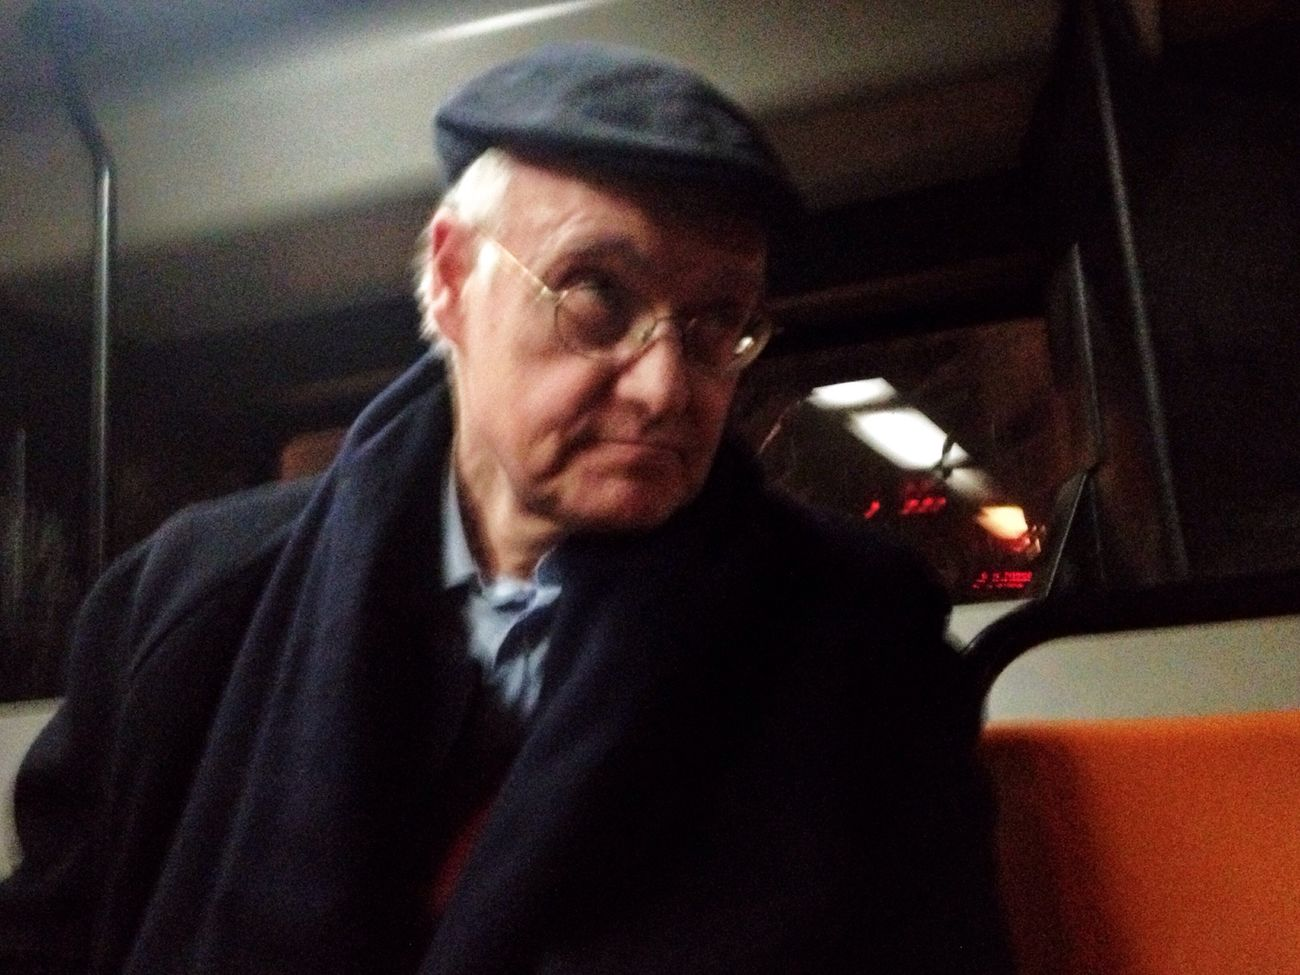 Last Night Man Bus Public Transportation Nightbus Colors Color Portrait Streetphotography David De La Cruz People Of EyeEm